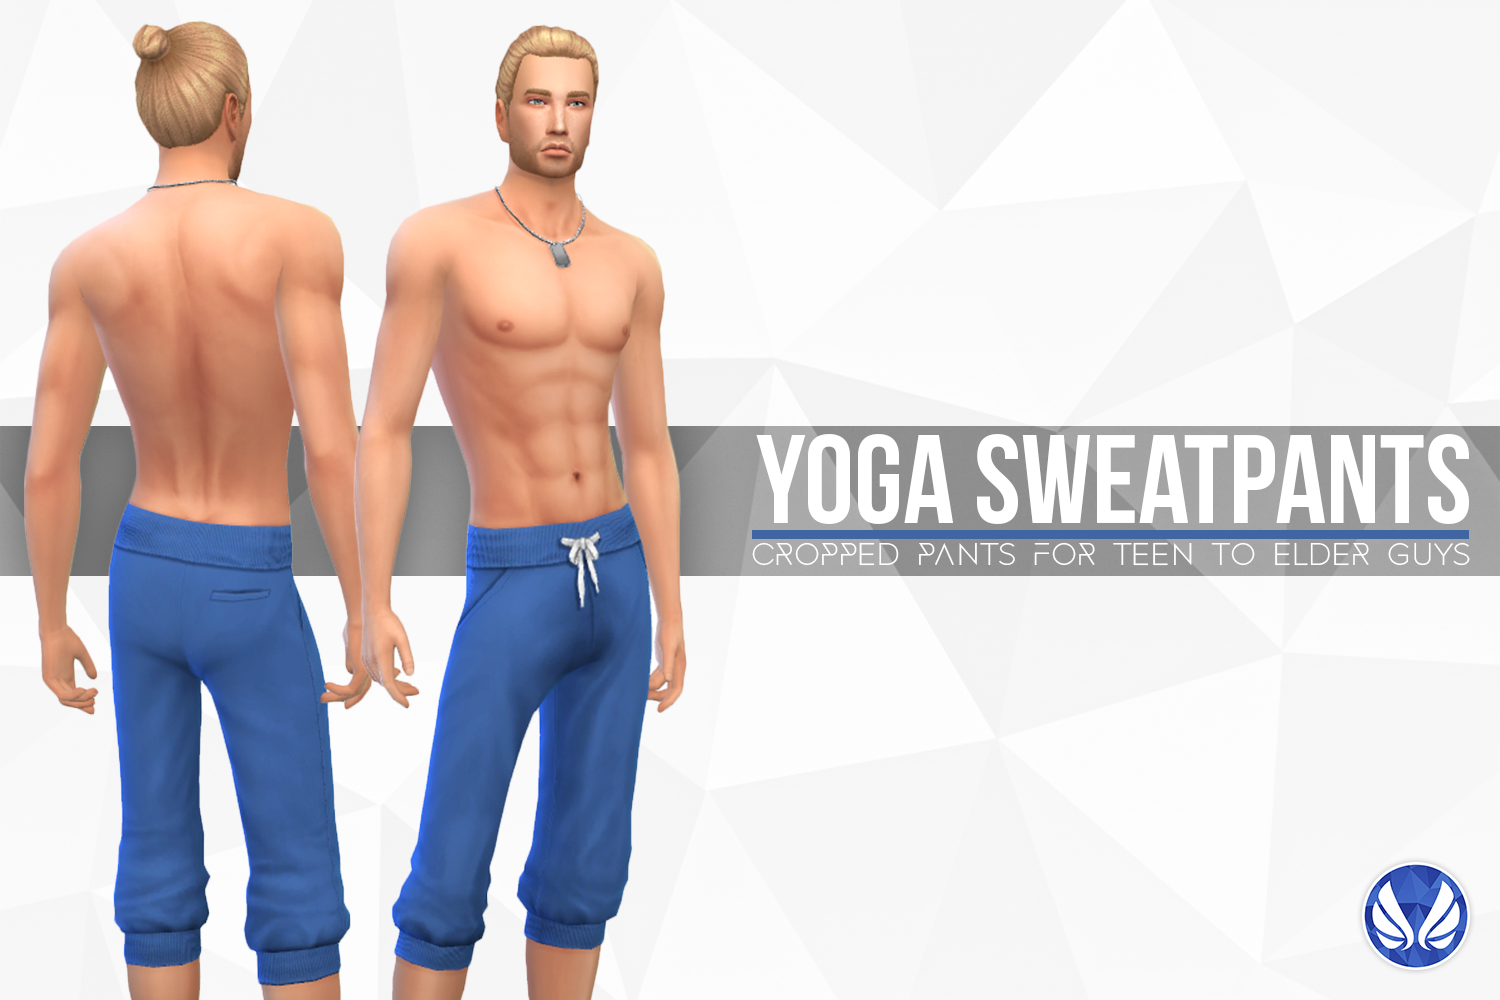 Yoga Sweatpants by Peacemaker ic